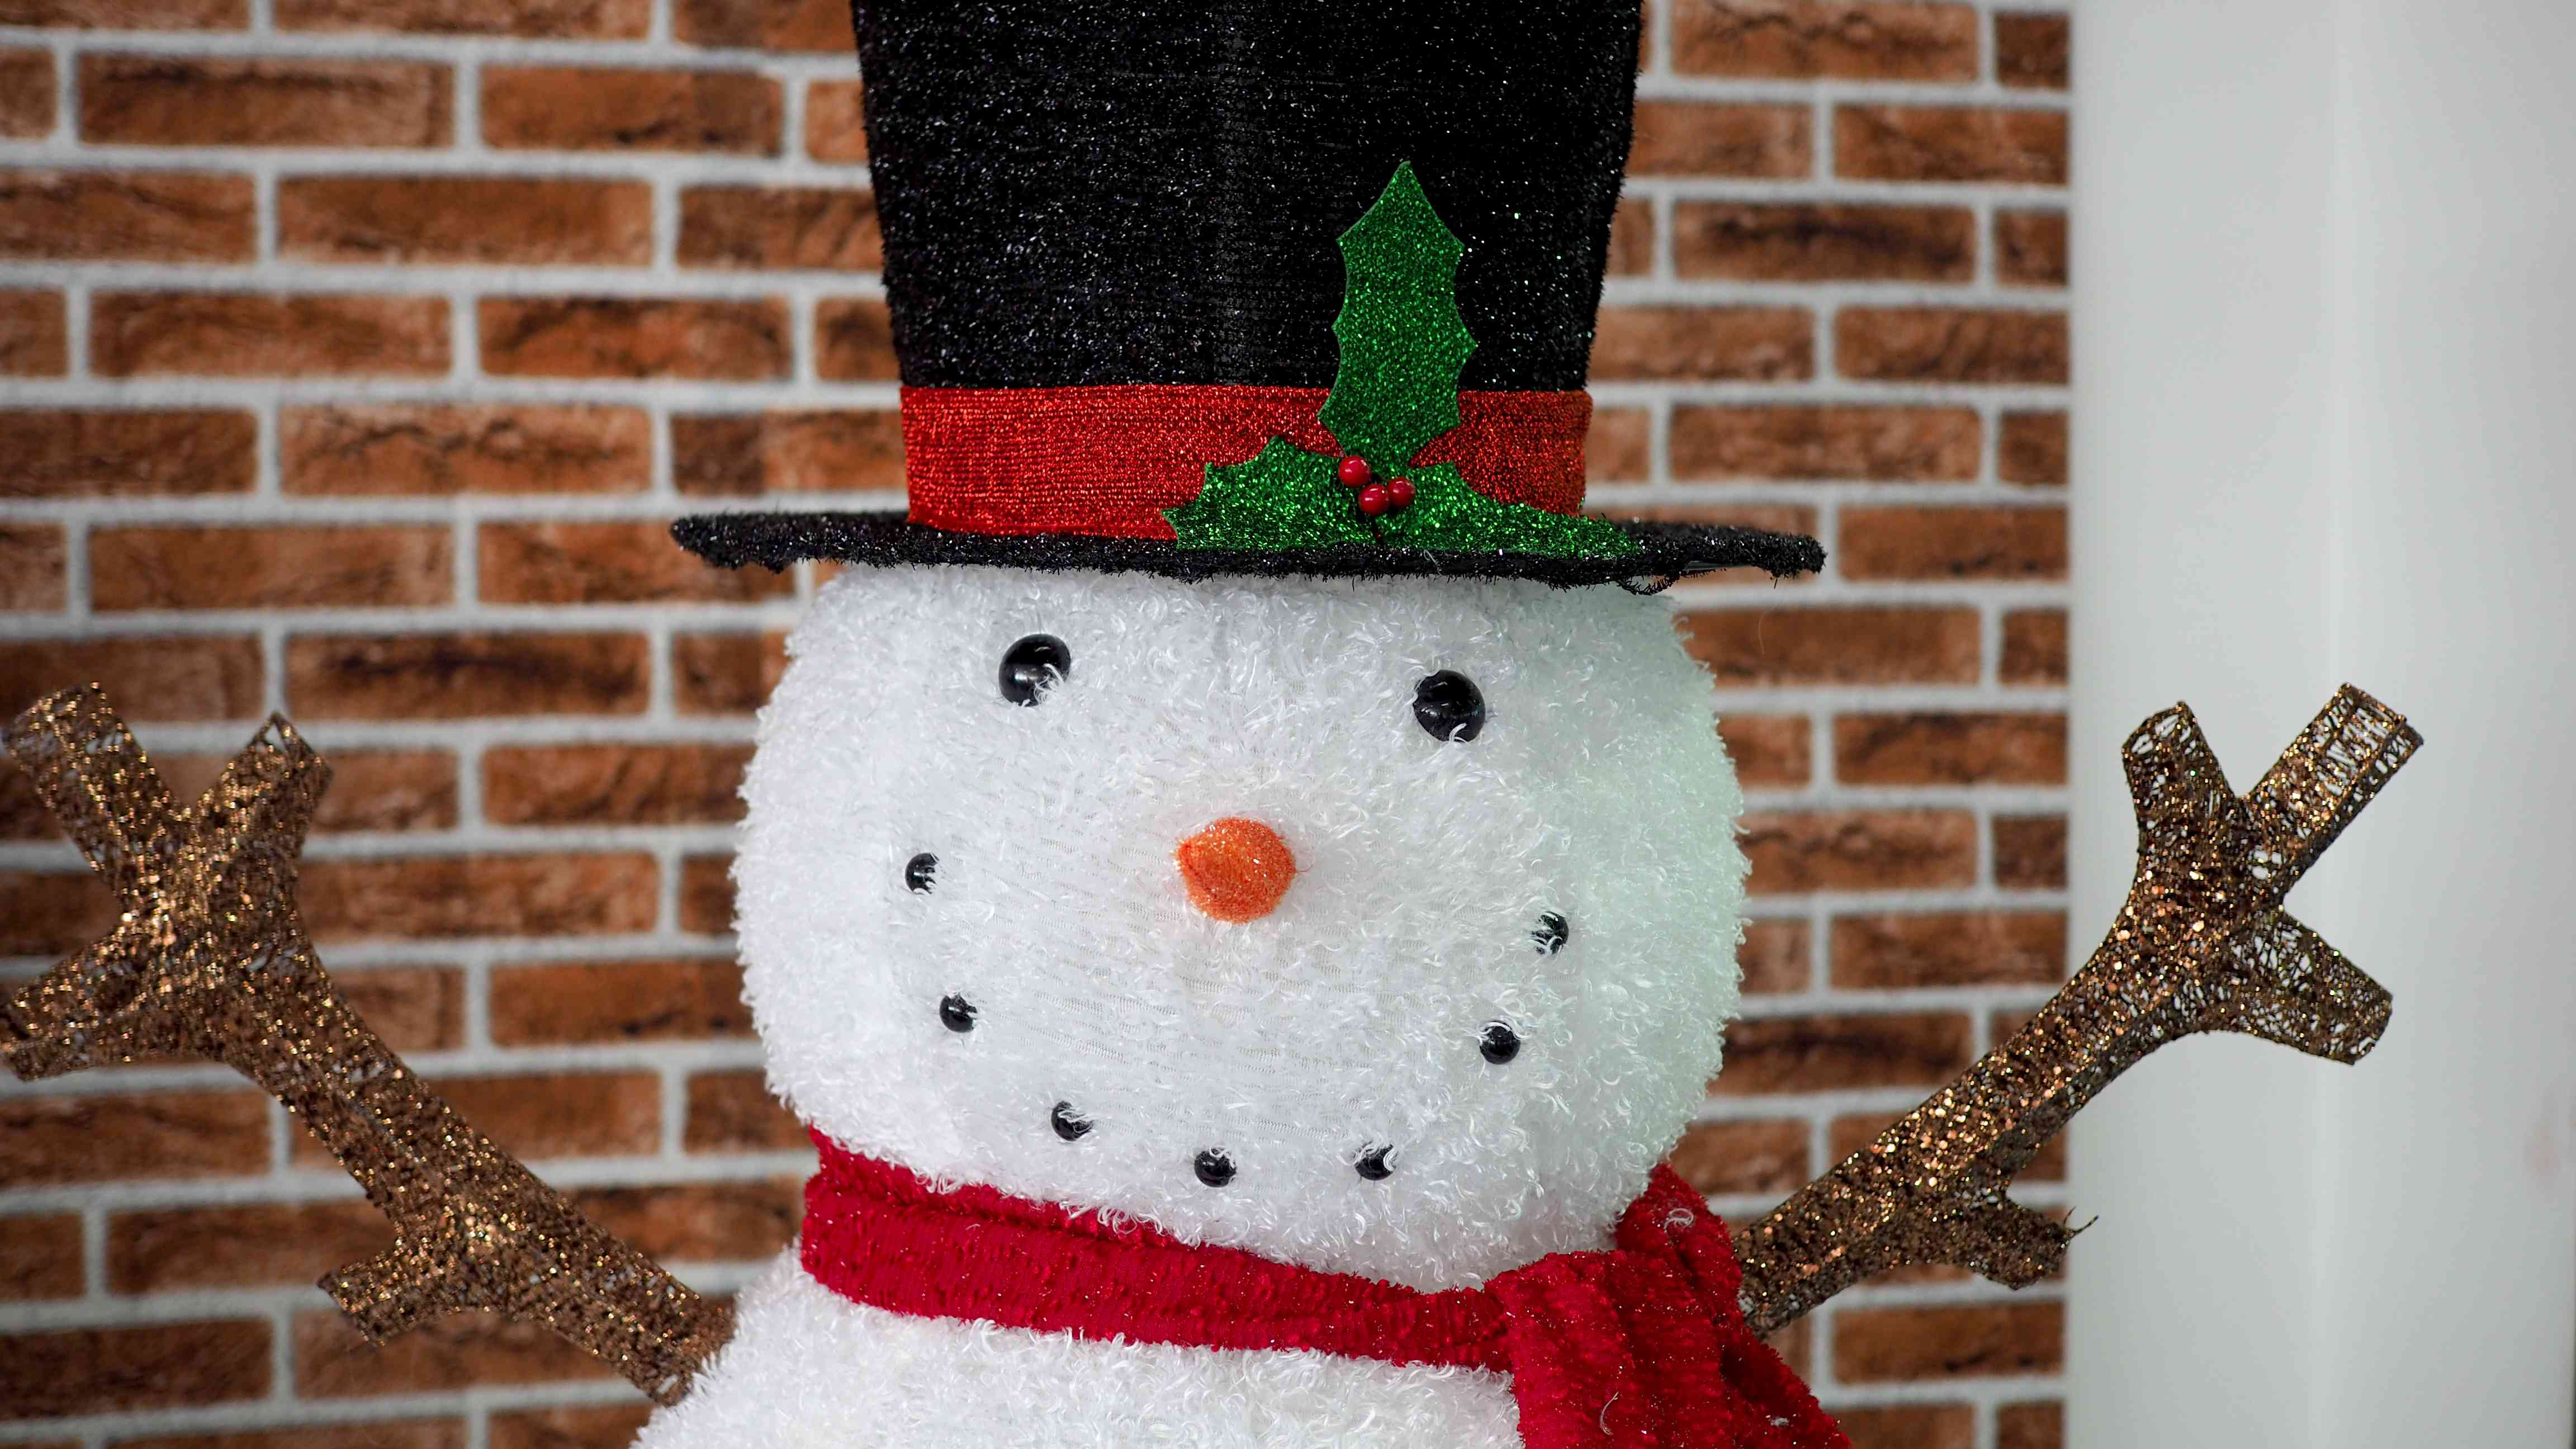 Closeup face of a snowman Christmas decoration in indoor area.